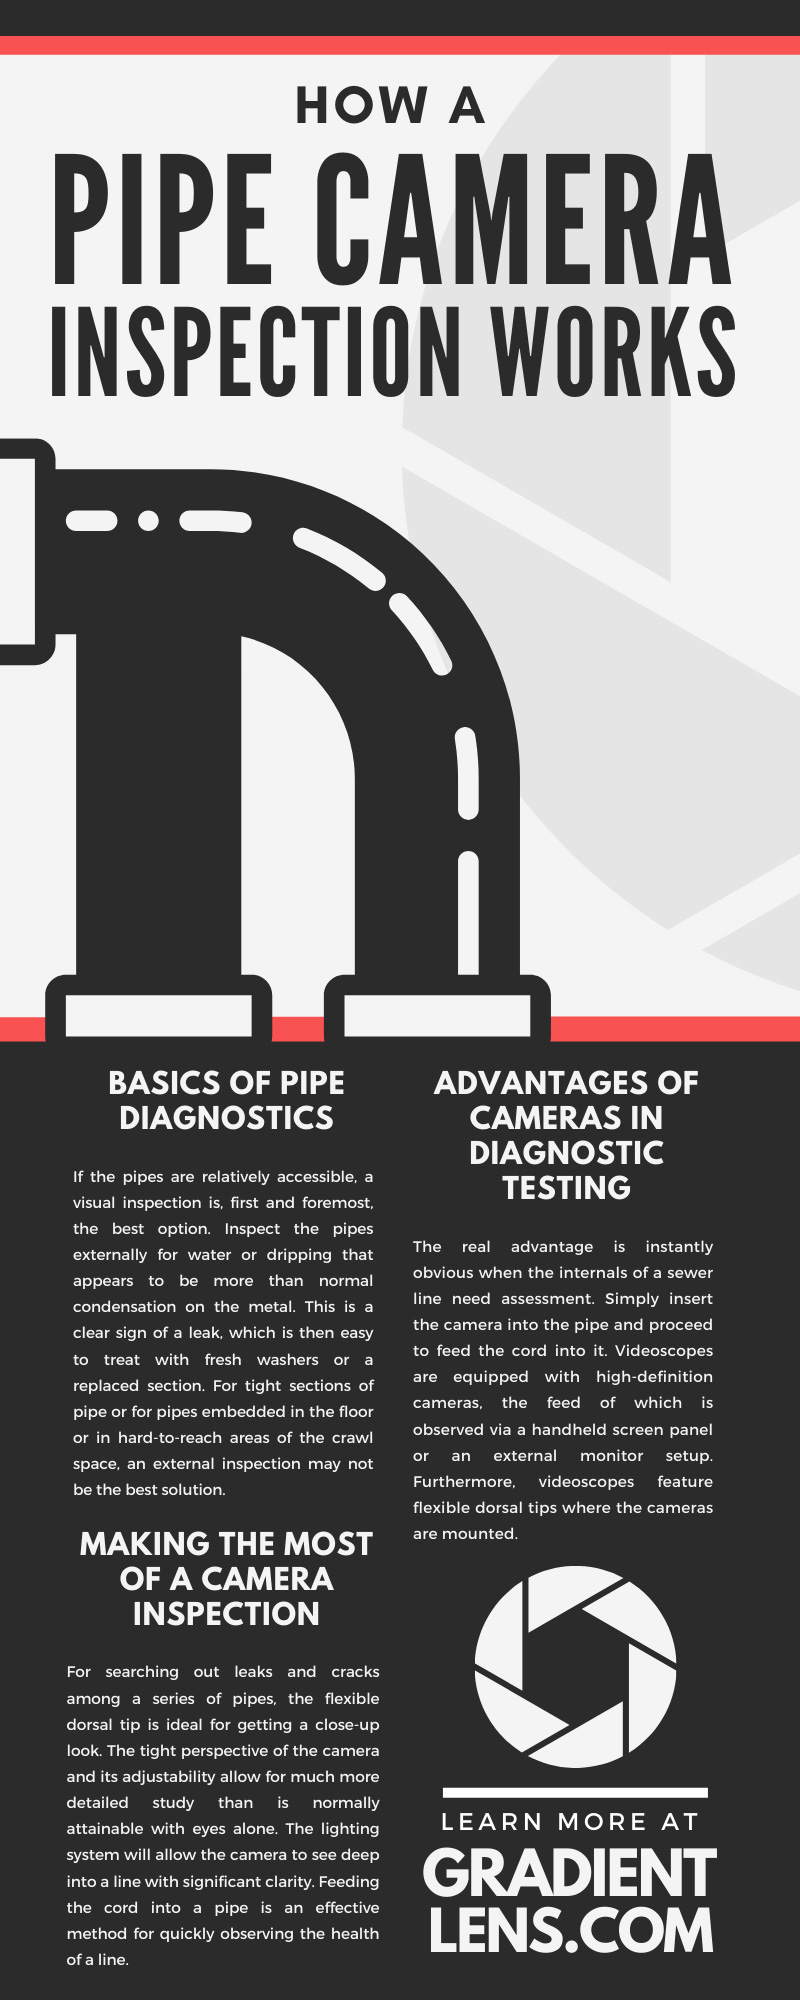 How a Pipe Camera Inspection Works